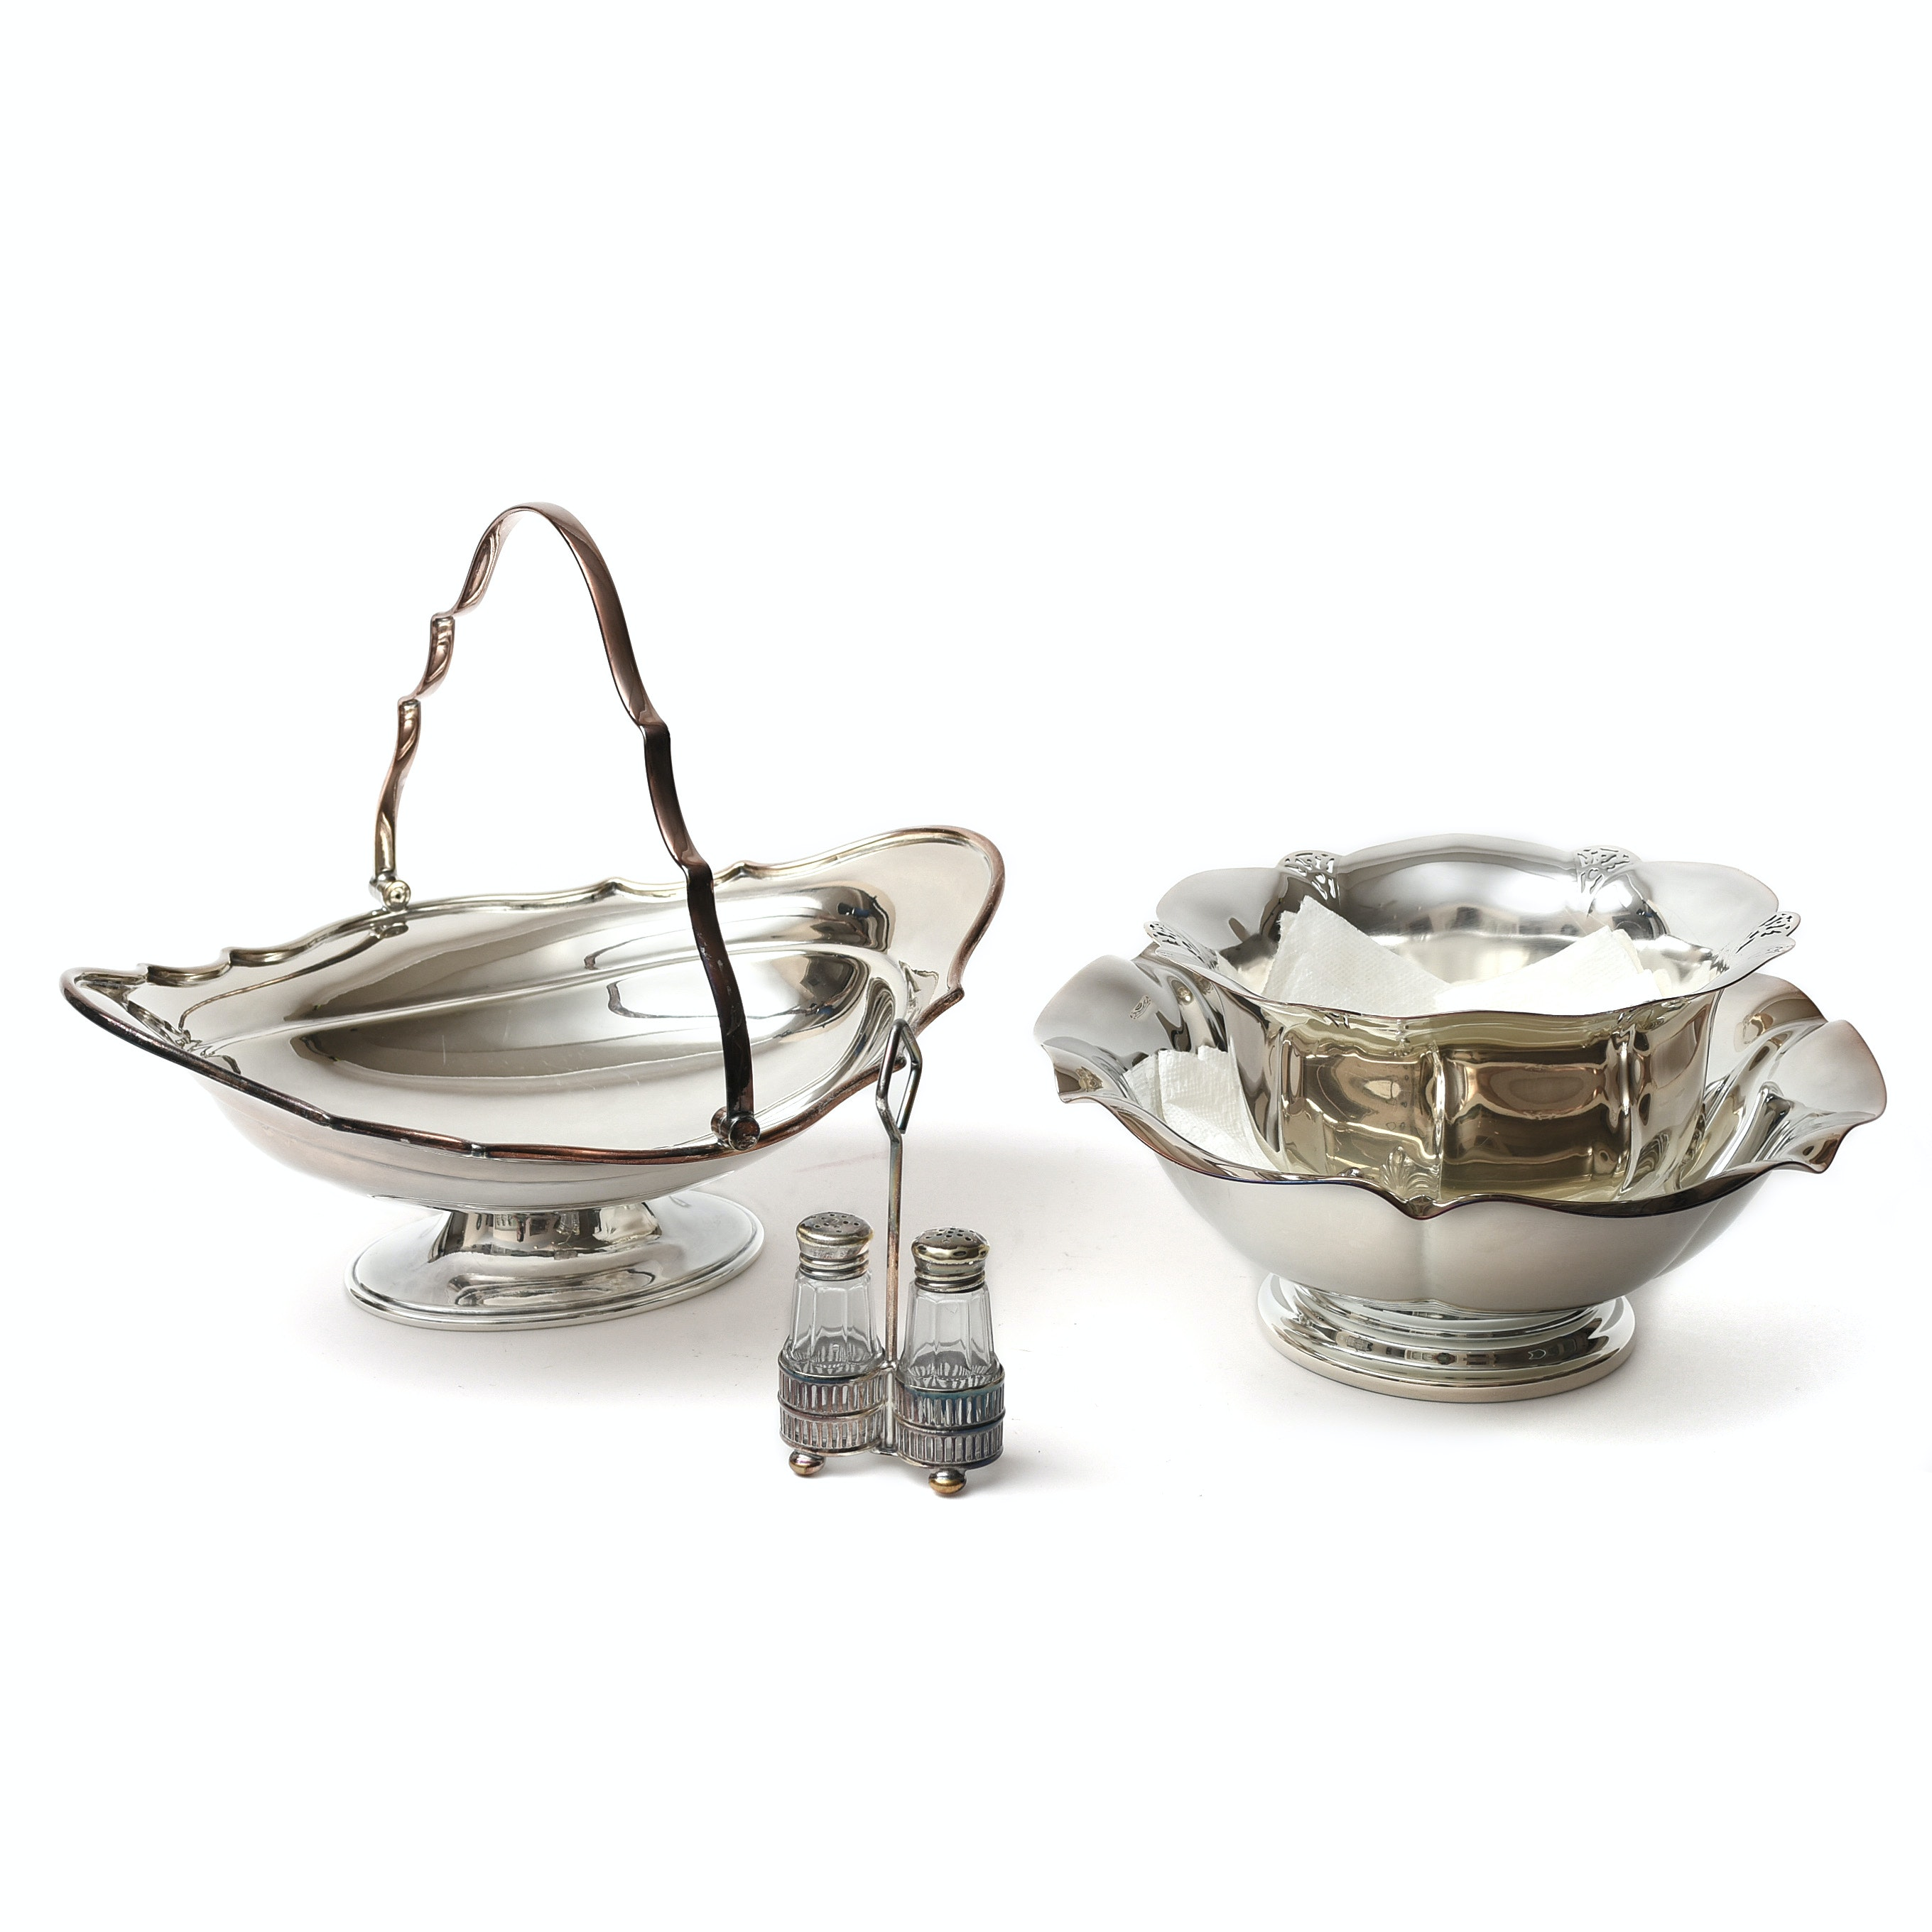 Silver Plate Basket, Salt and Pepper Set and Bowls